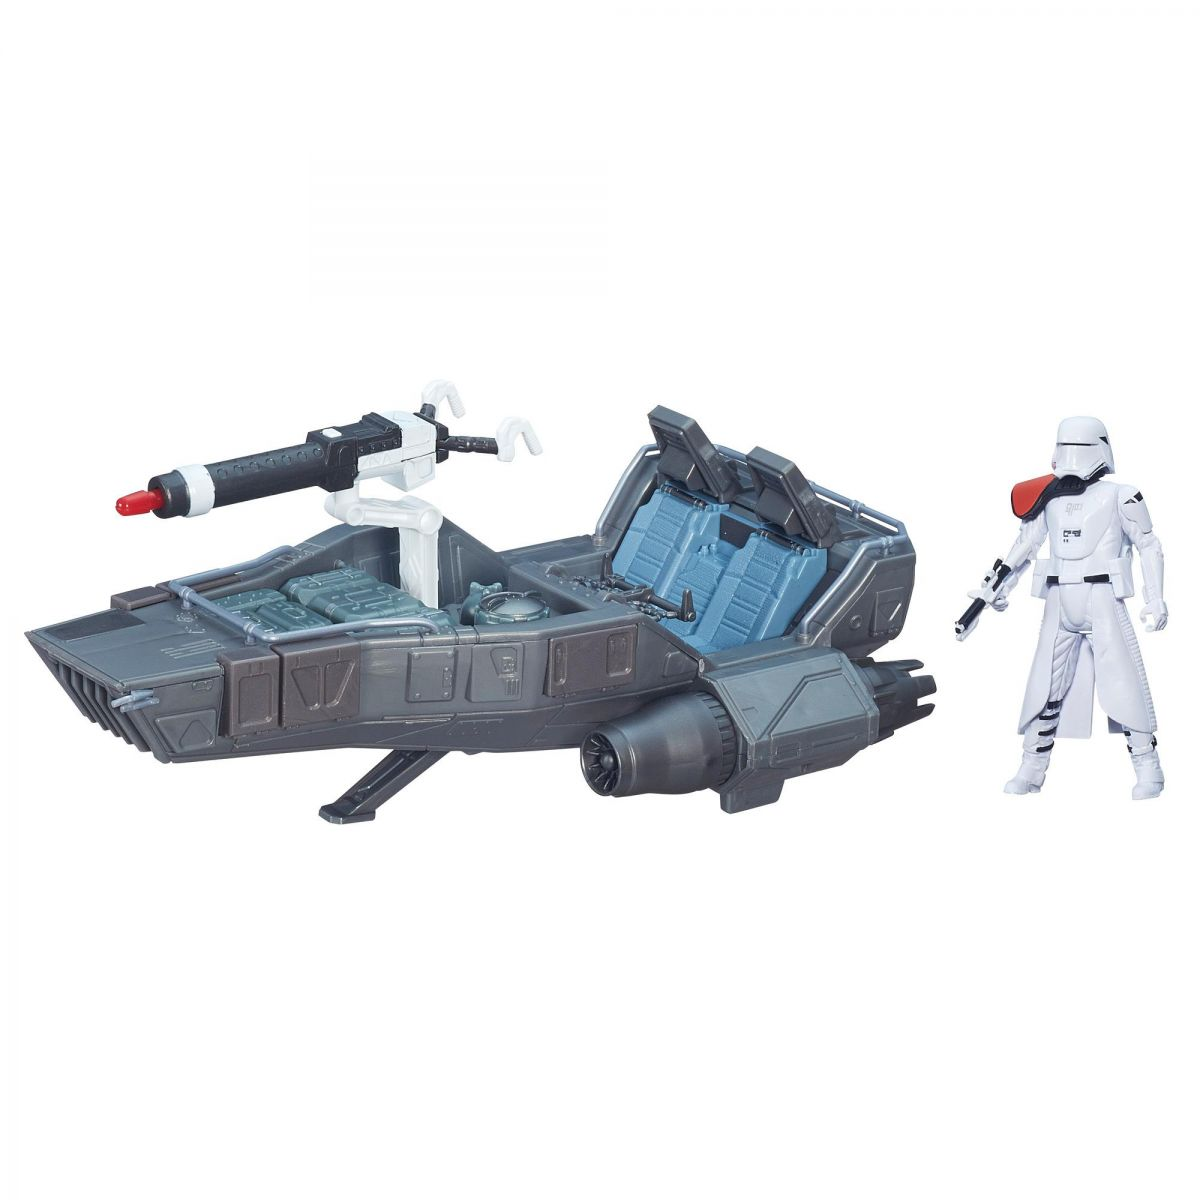 Star Wars The Force Awakens First order Snowspeeder - Hasbro